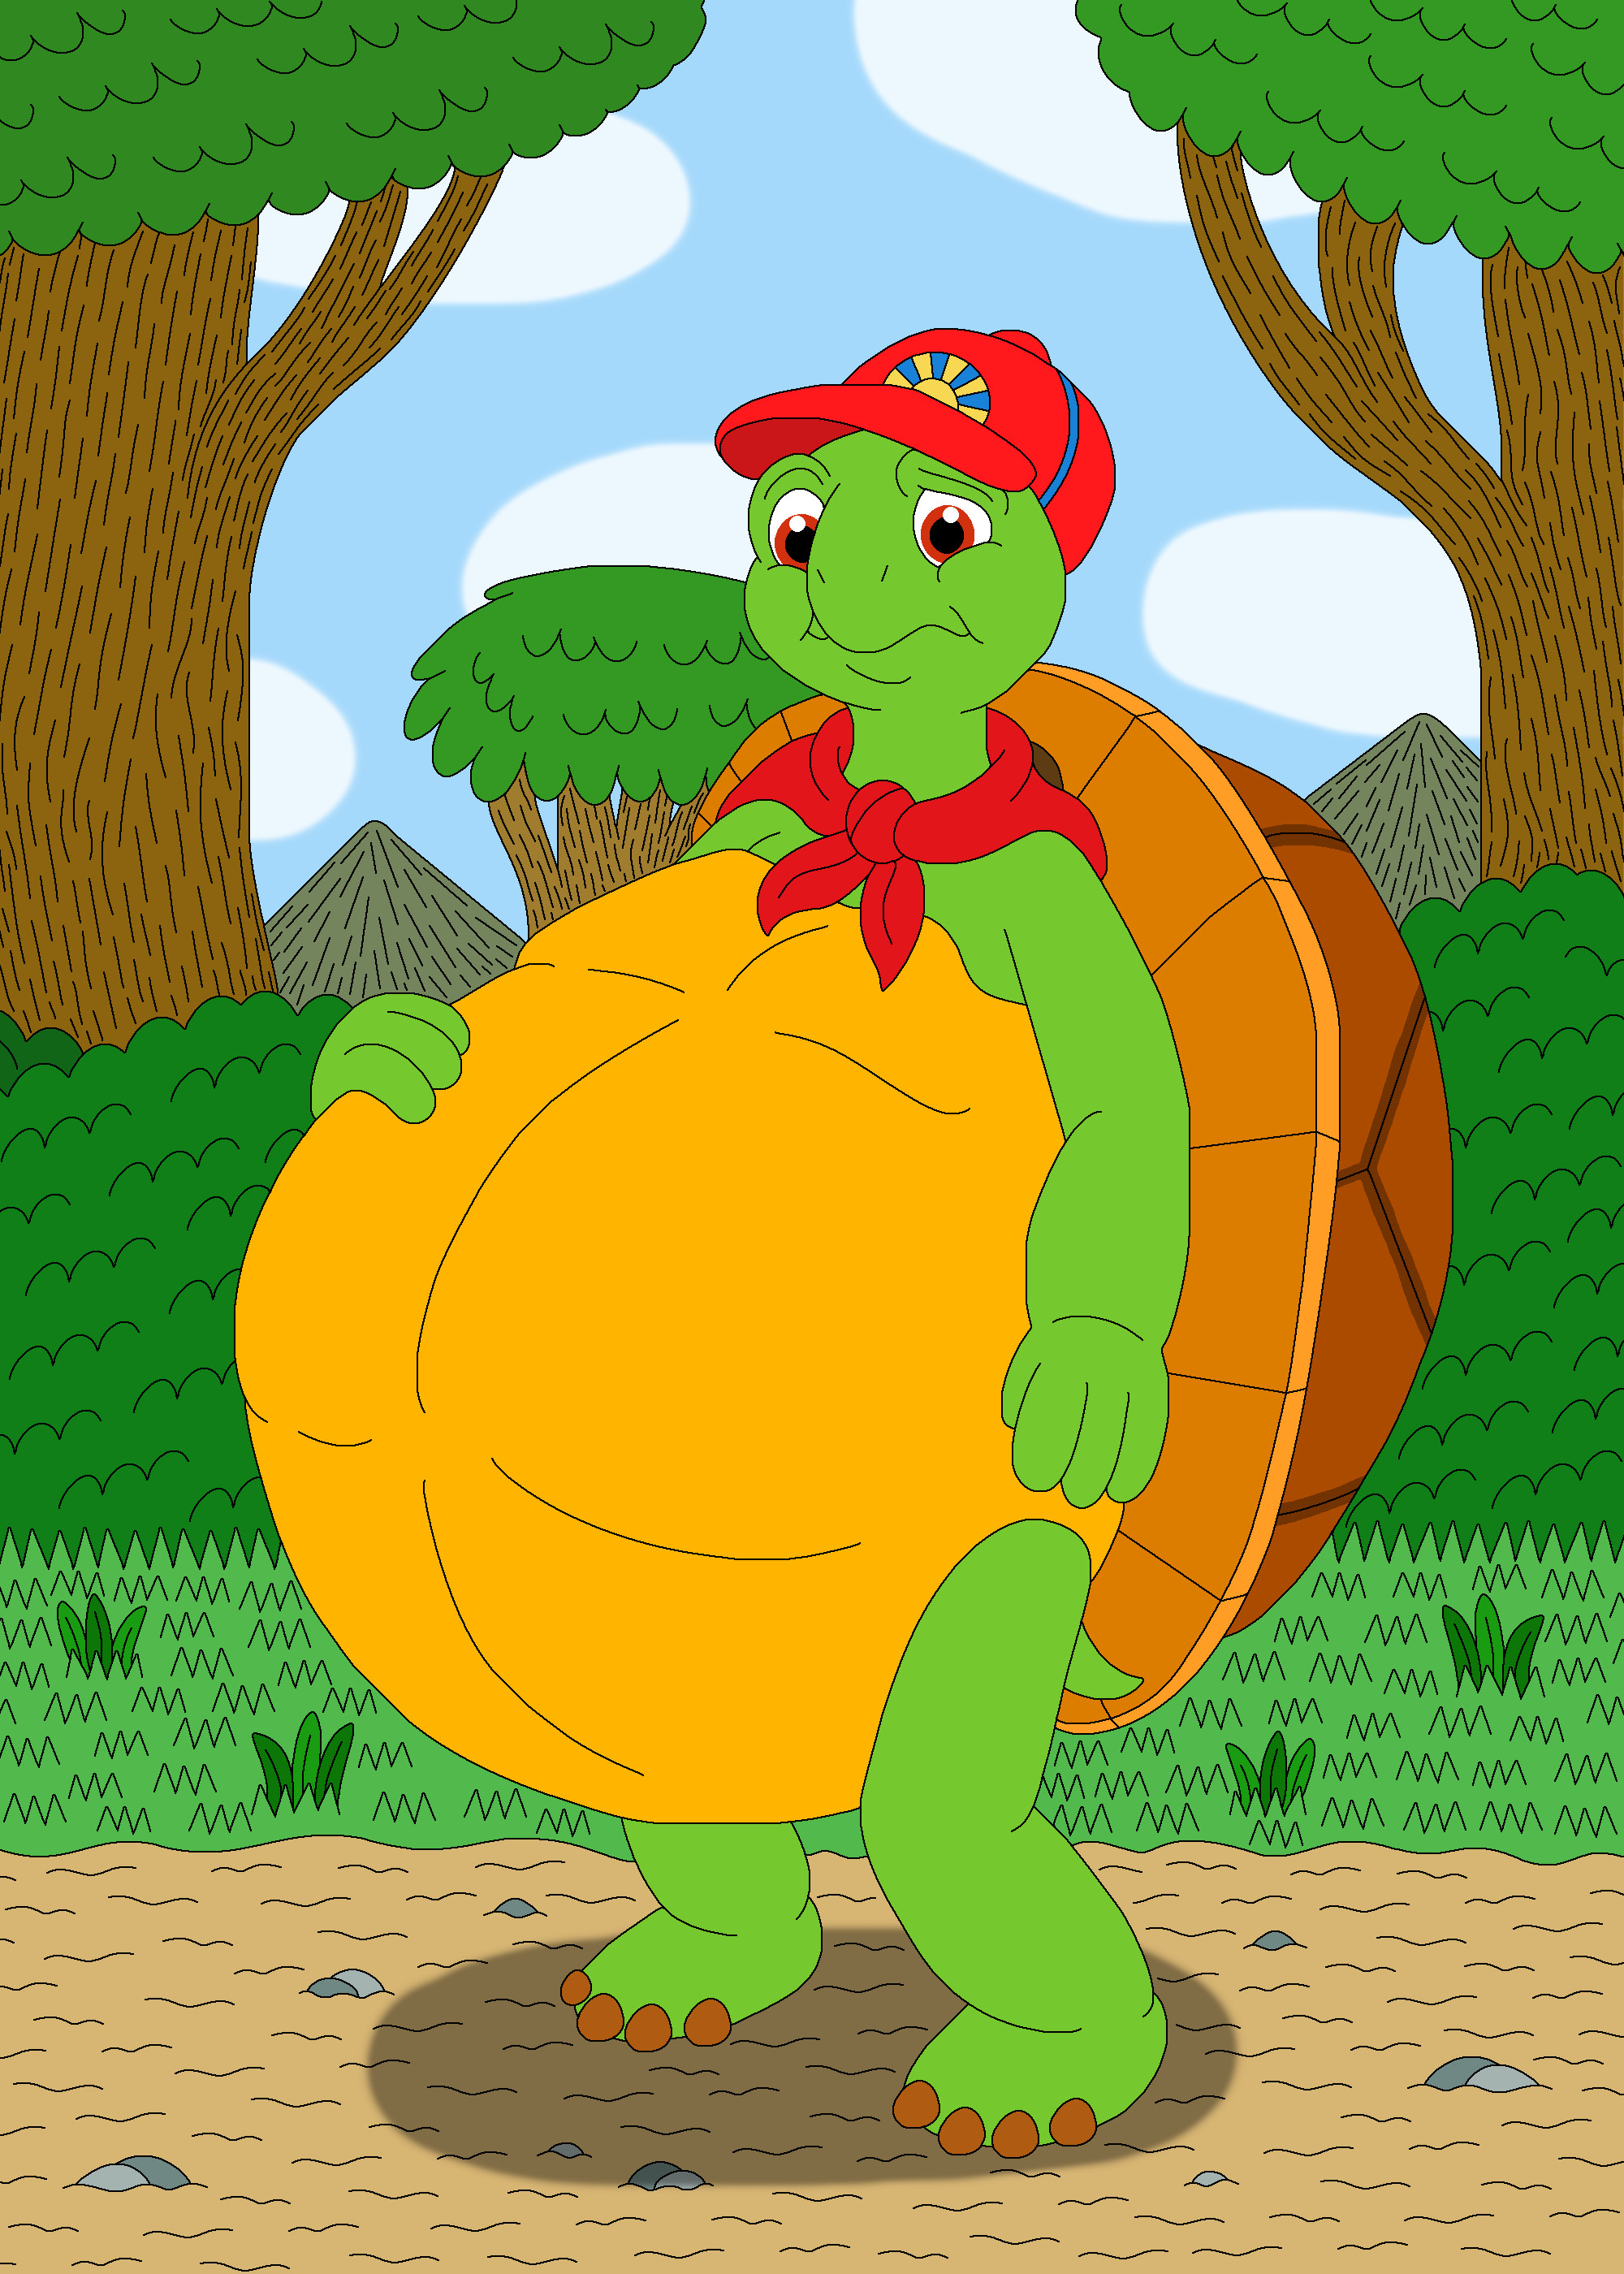 Uncategorized Picture Of Franklin The Turtle franklin the turtle and his friends by mcsaurus on deviantart 60 57 franklins big belly mcsaurus